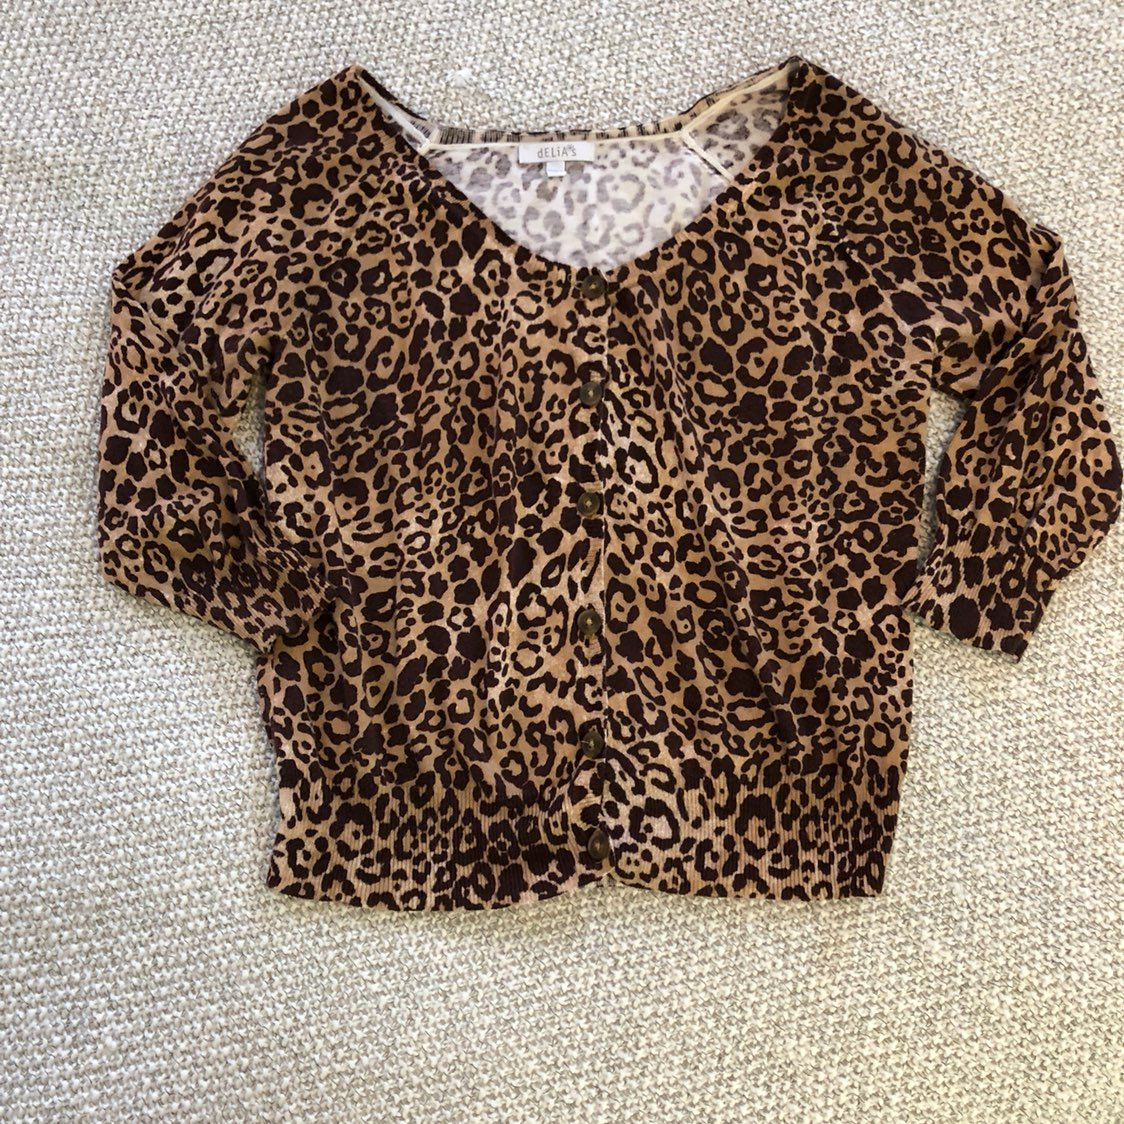 Leopard Print Button Down Cardigan - Mercari: BUY & SELL THINGS ...